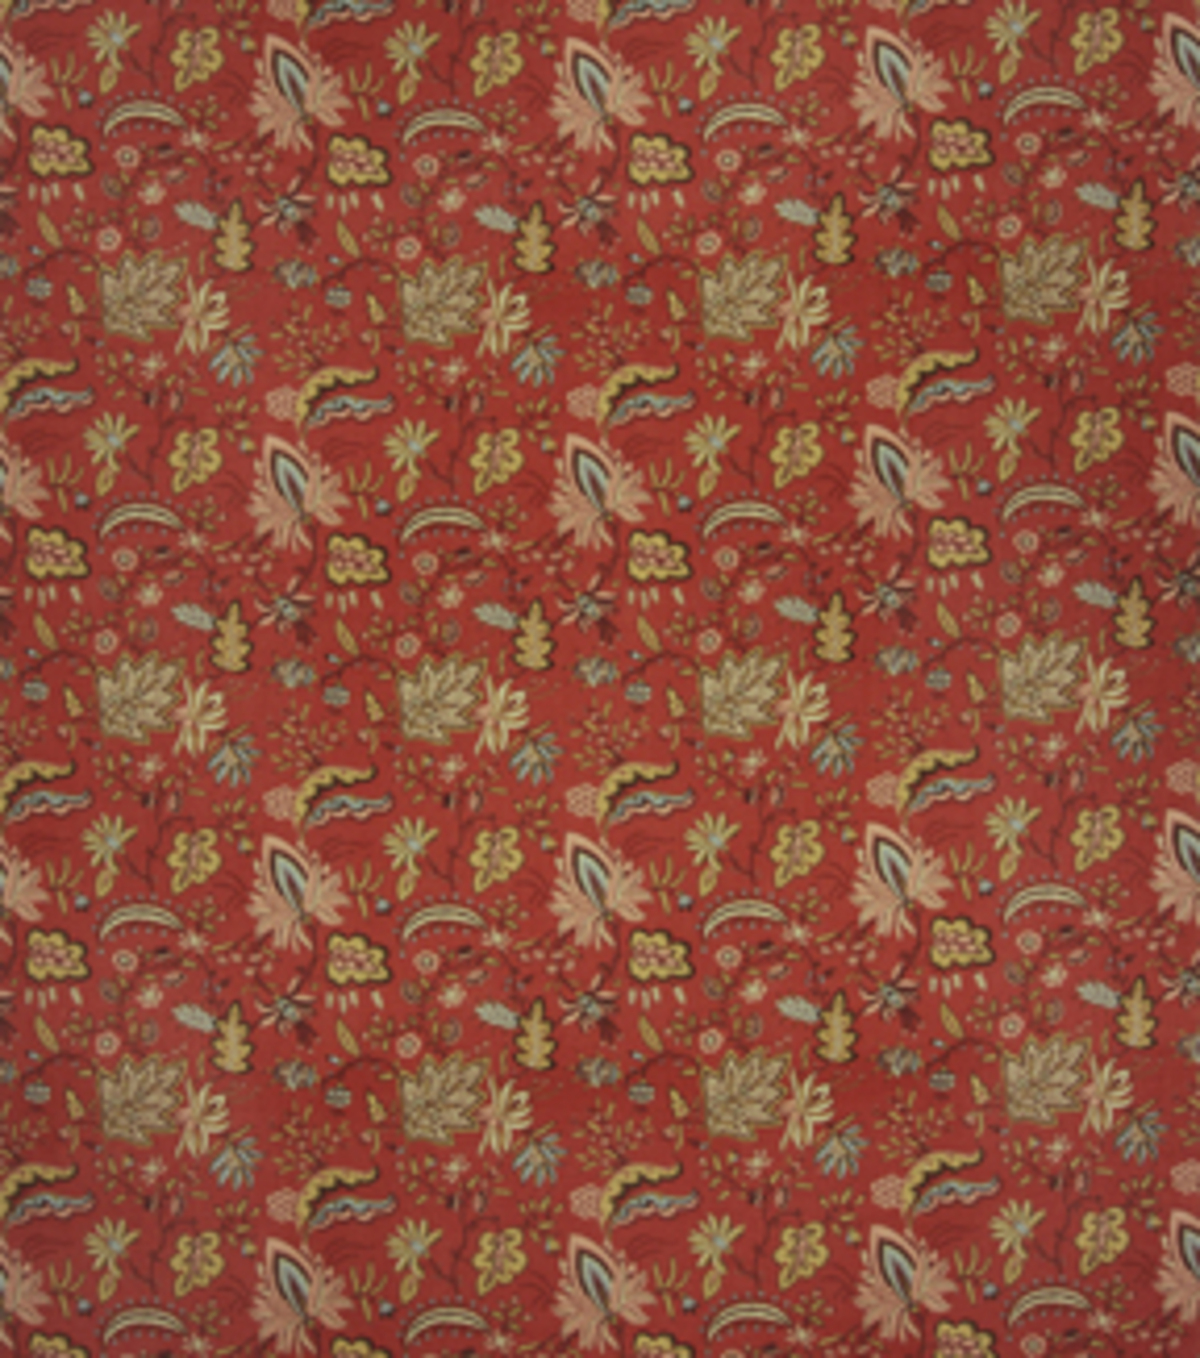 Home Decor 8\u0022x8\u0022 Fabric Swatch-French General Contrast Rural Red